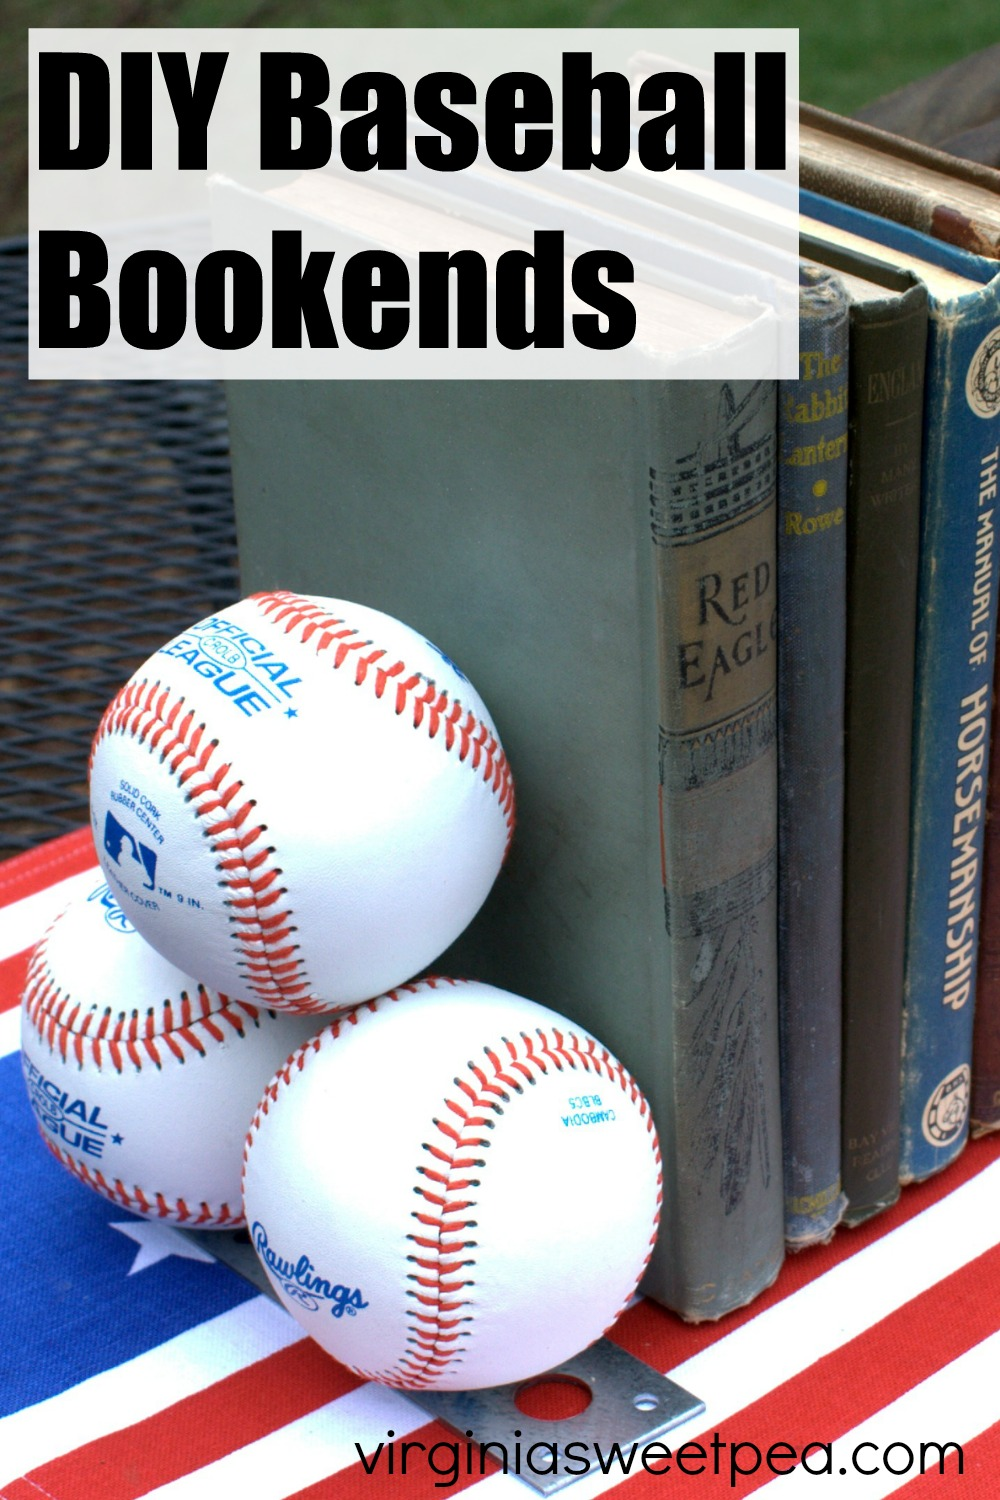 DIY Baseball Bookends - Learn how to make bookends using baseballs.  This is a project that any baseball lover will appreciate!  #baseball #baseballDIY #baseballhomedecor #baseballbookends via @spaula